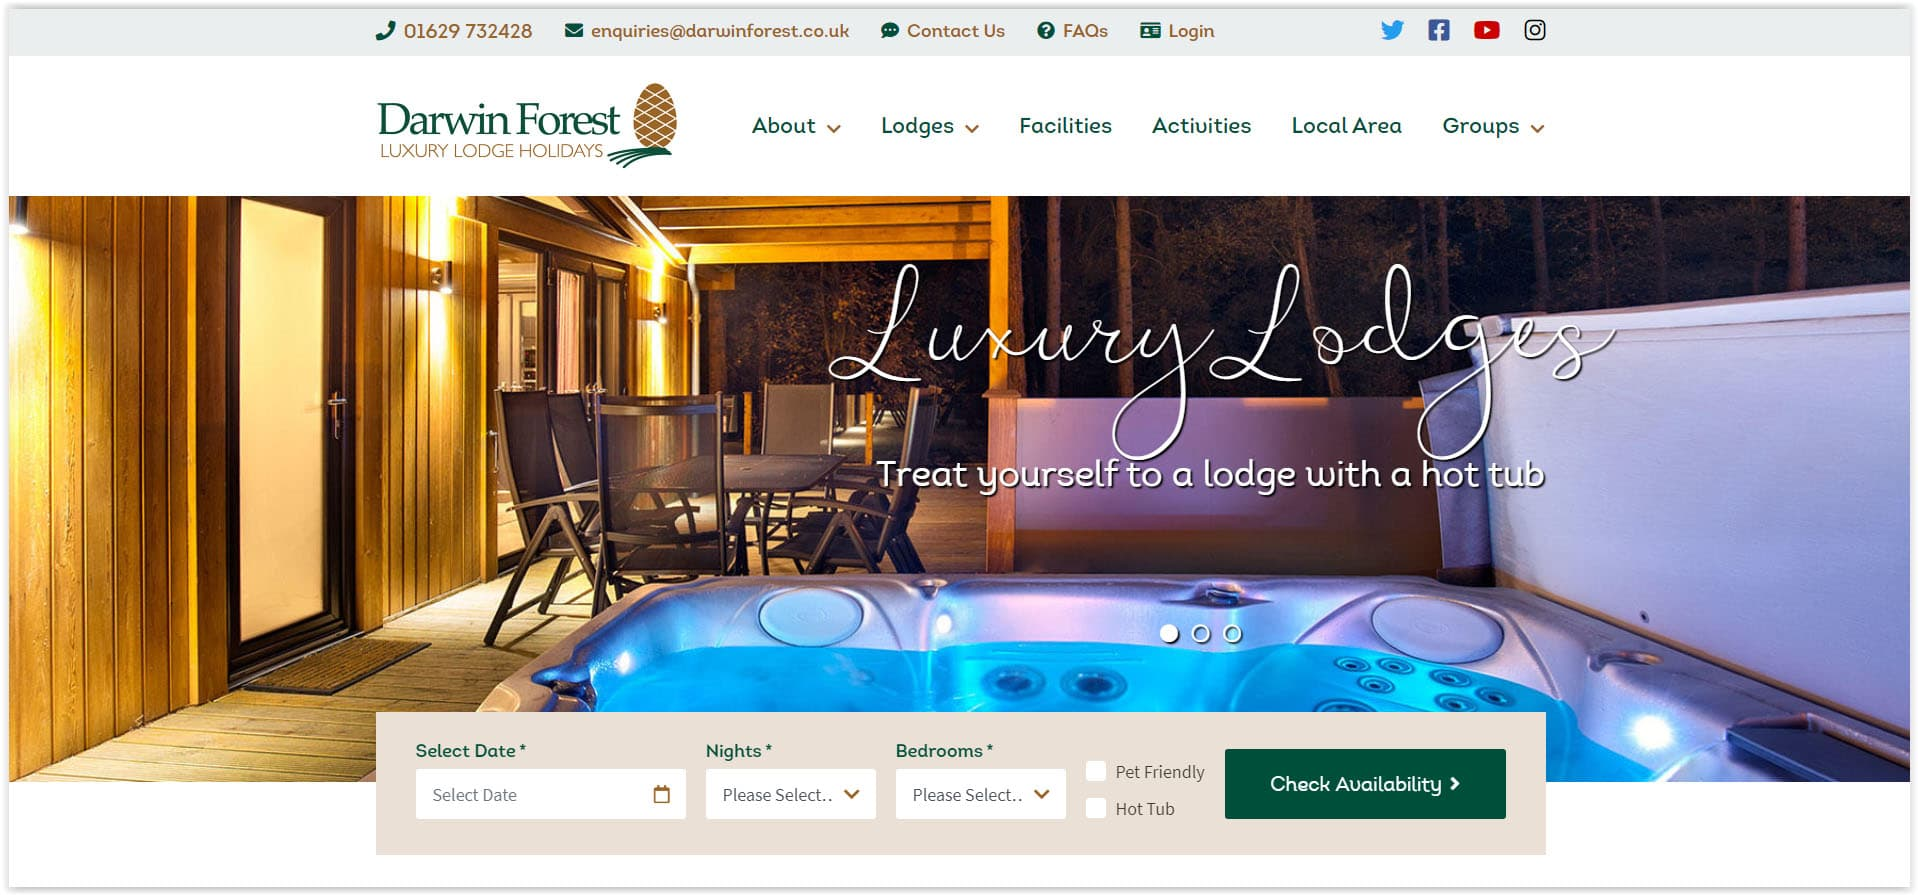 Website Design For Hotels, Self-Catering And Hospitality - Top 5 Ideas In 2020 Tiger Digital Web Design